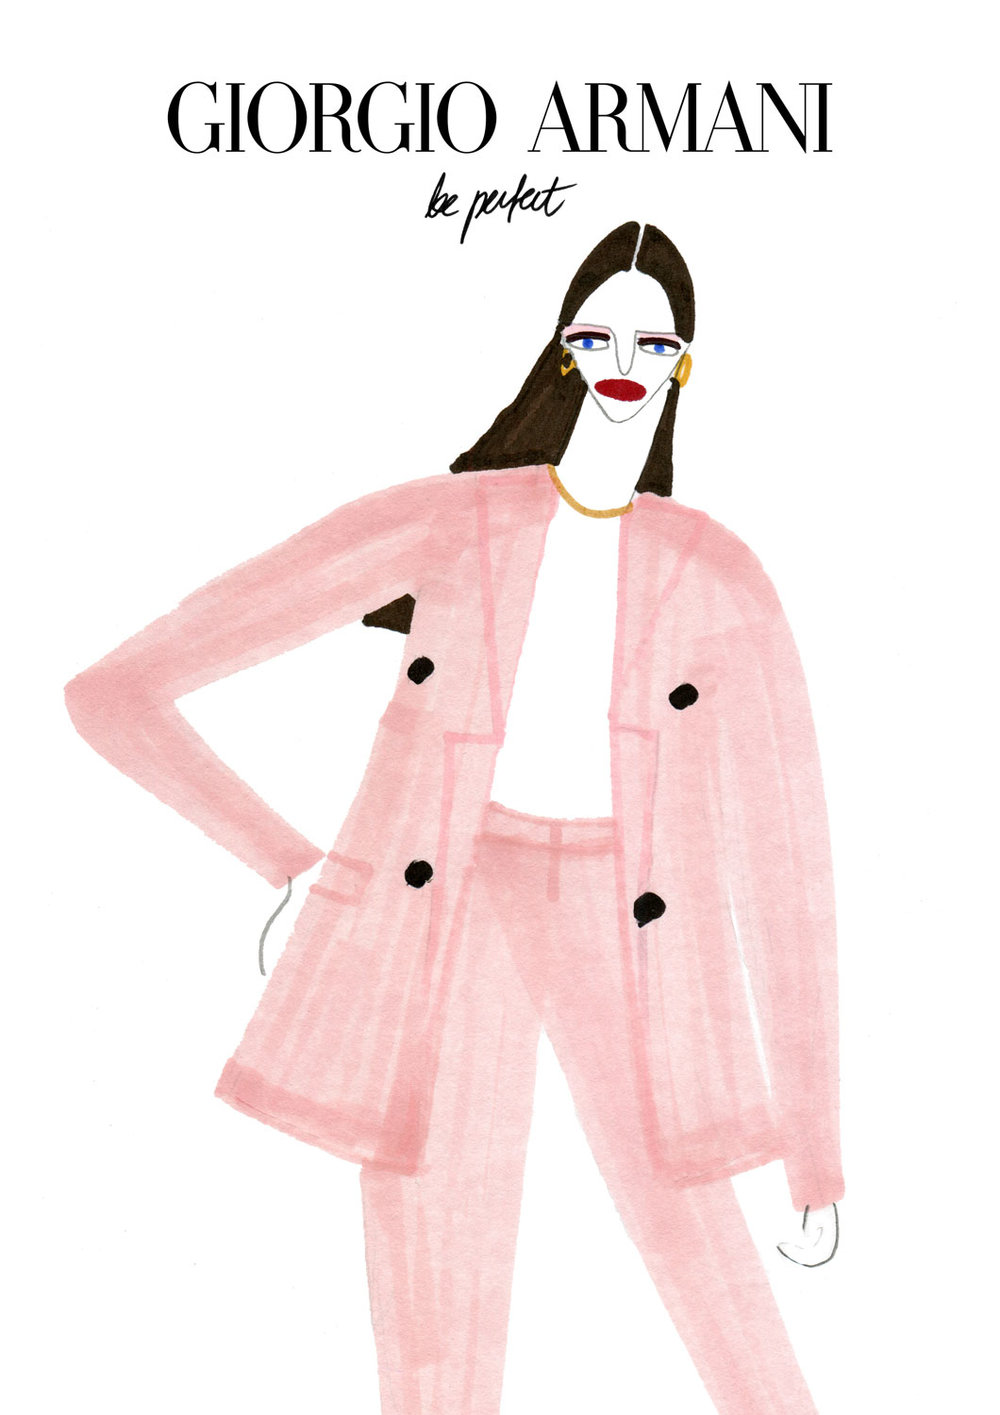 Fashion illustration for Giorgio Armani's Model in Pink